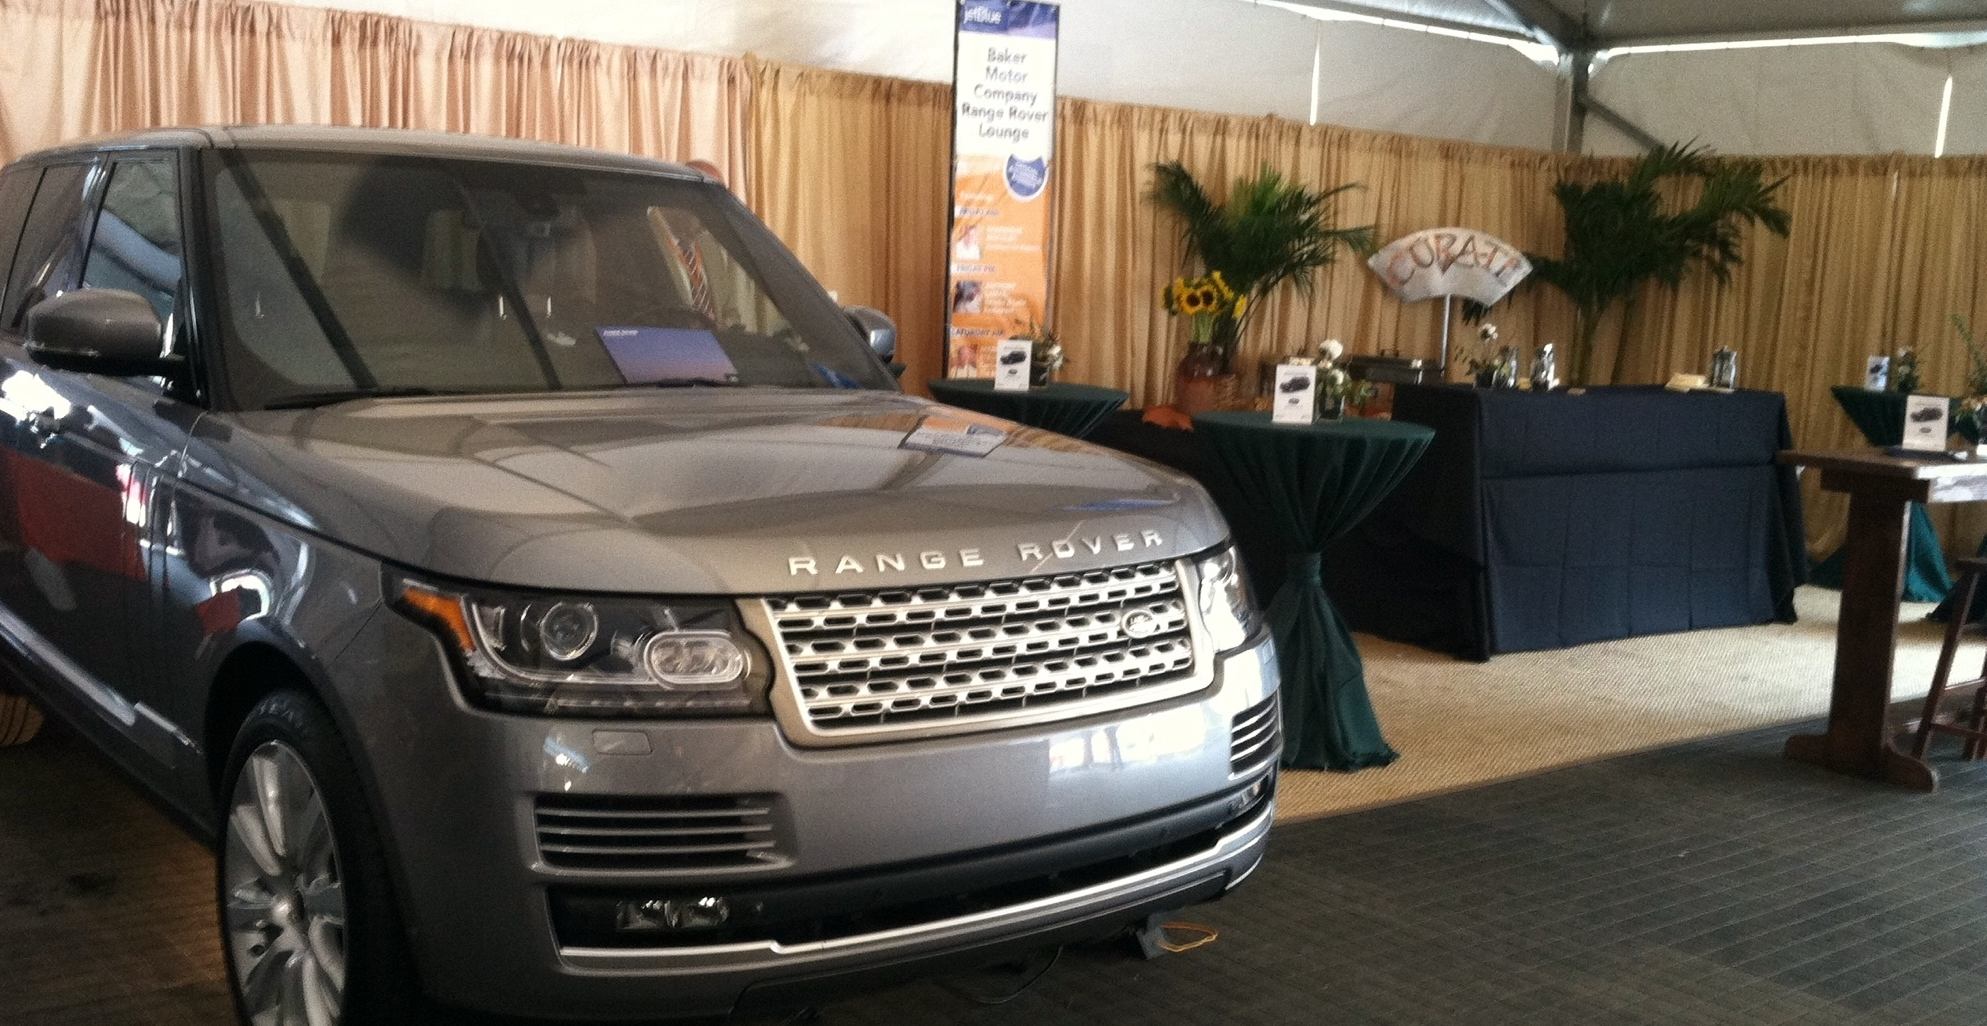 Land rover west ashley range rover lounge at wine food for Baker motor company land rover